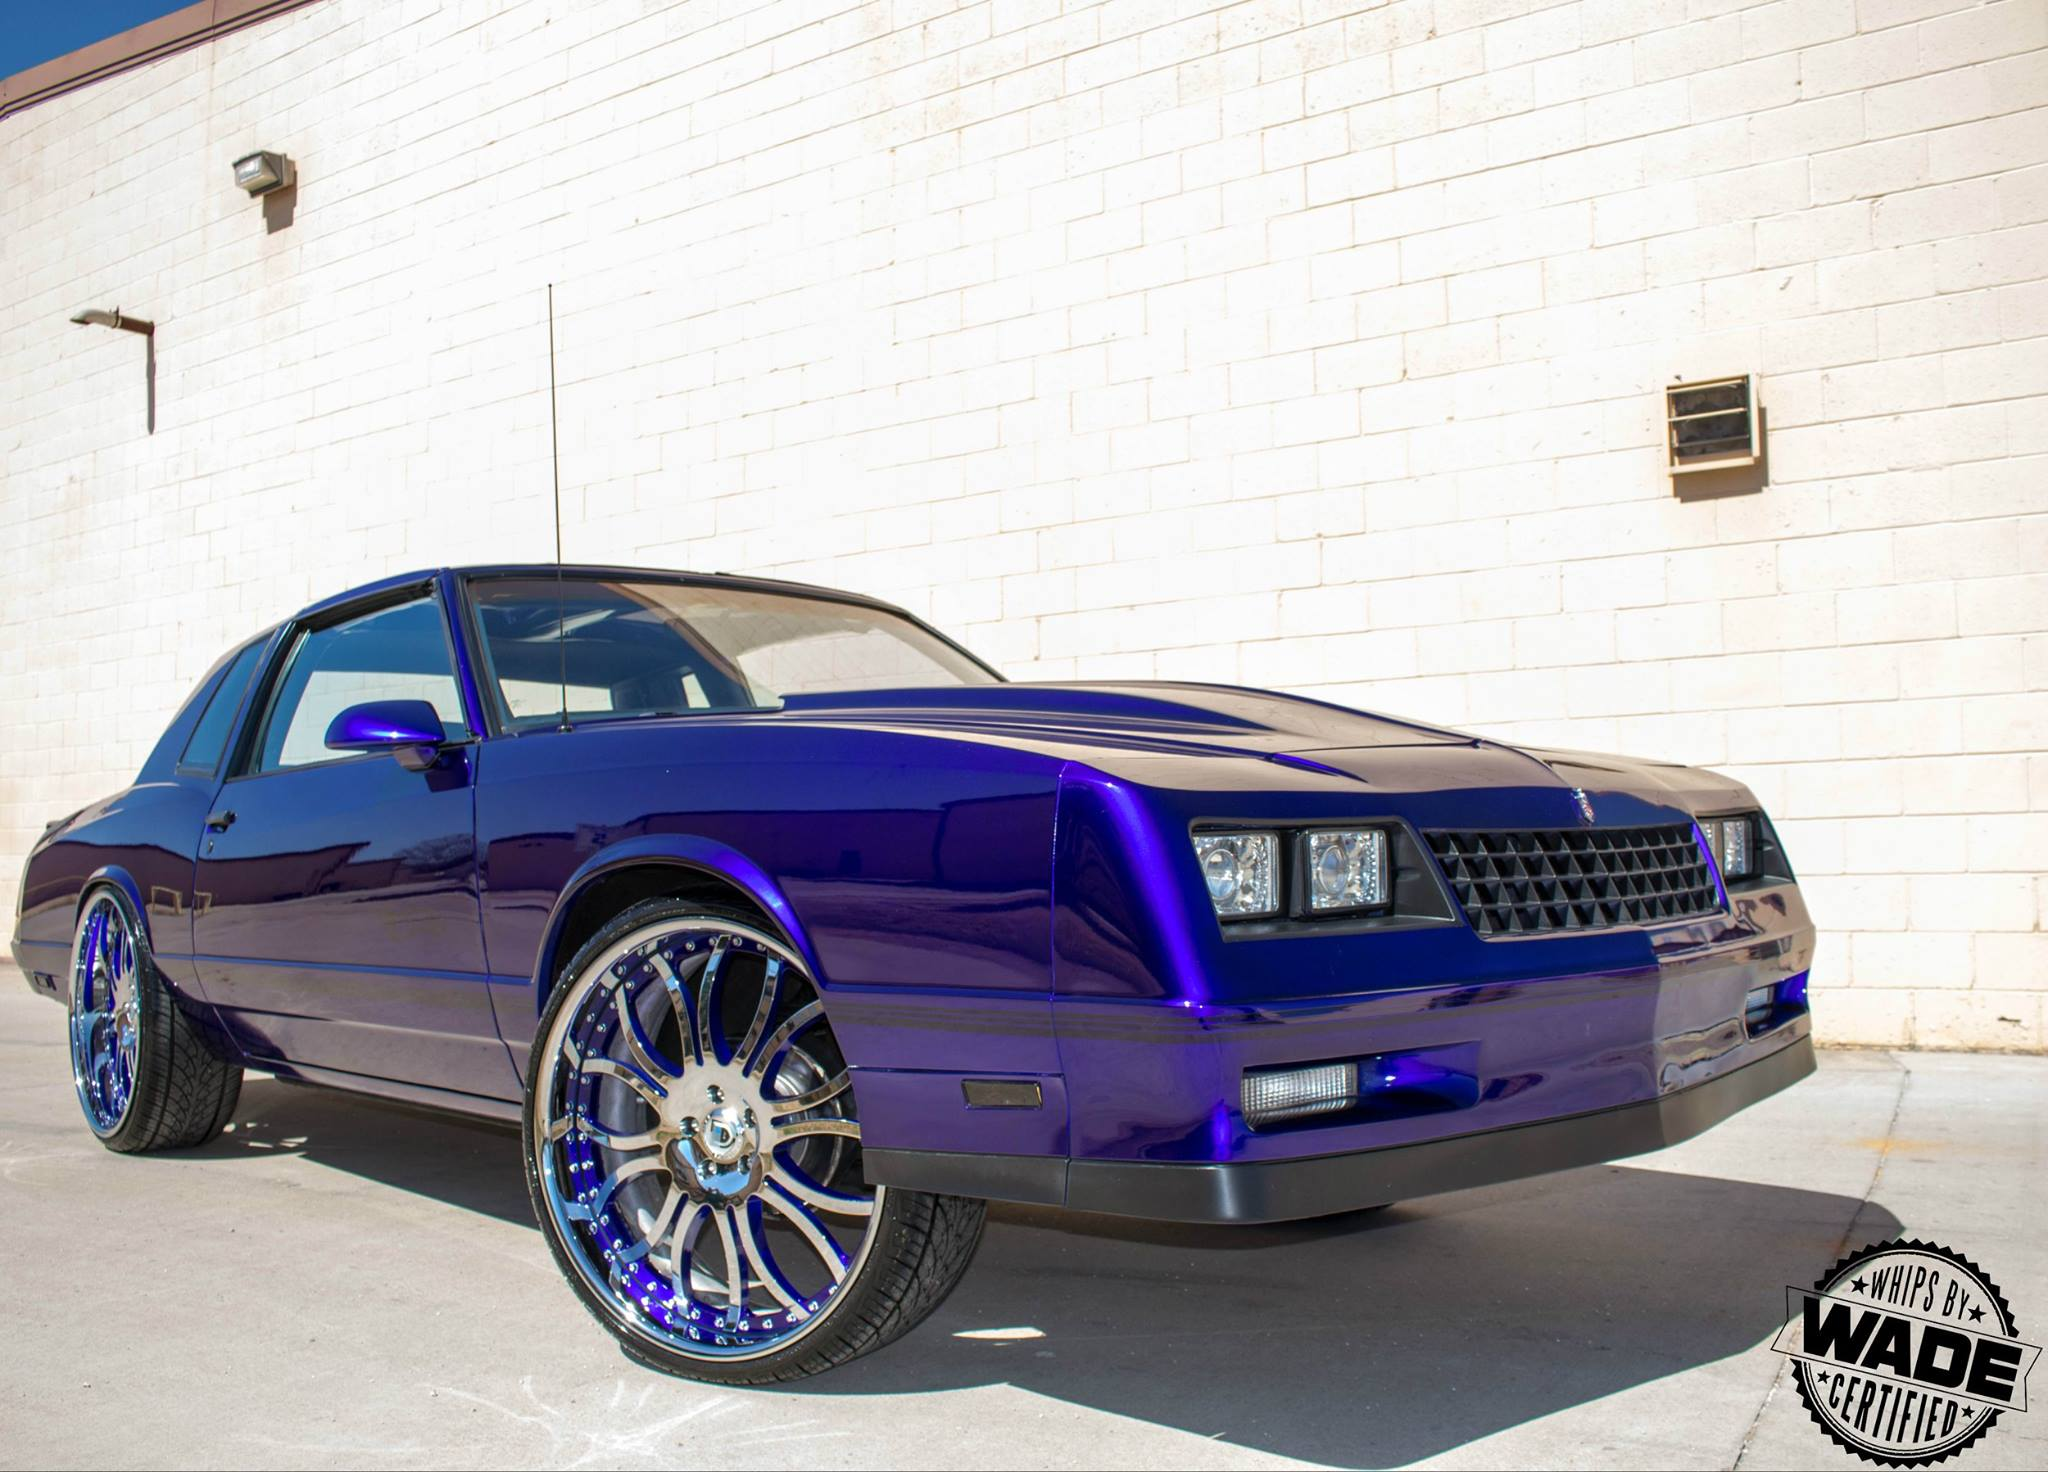 Kandy Monte Carlo SS 24 Inch Asanti Wheels By YoungBlood